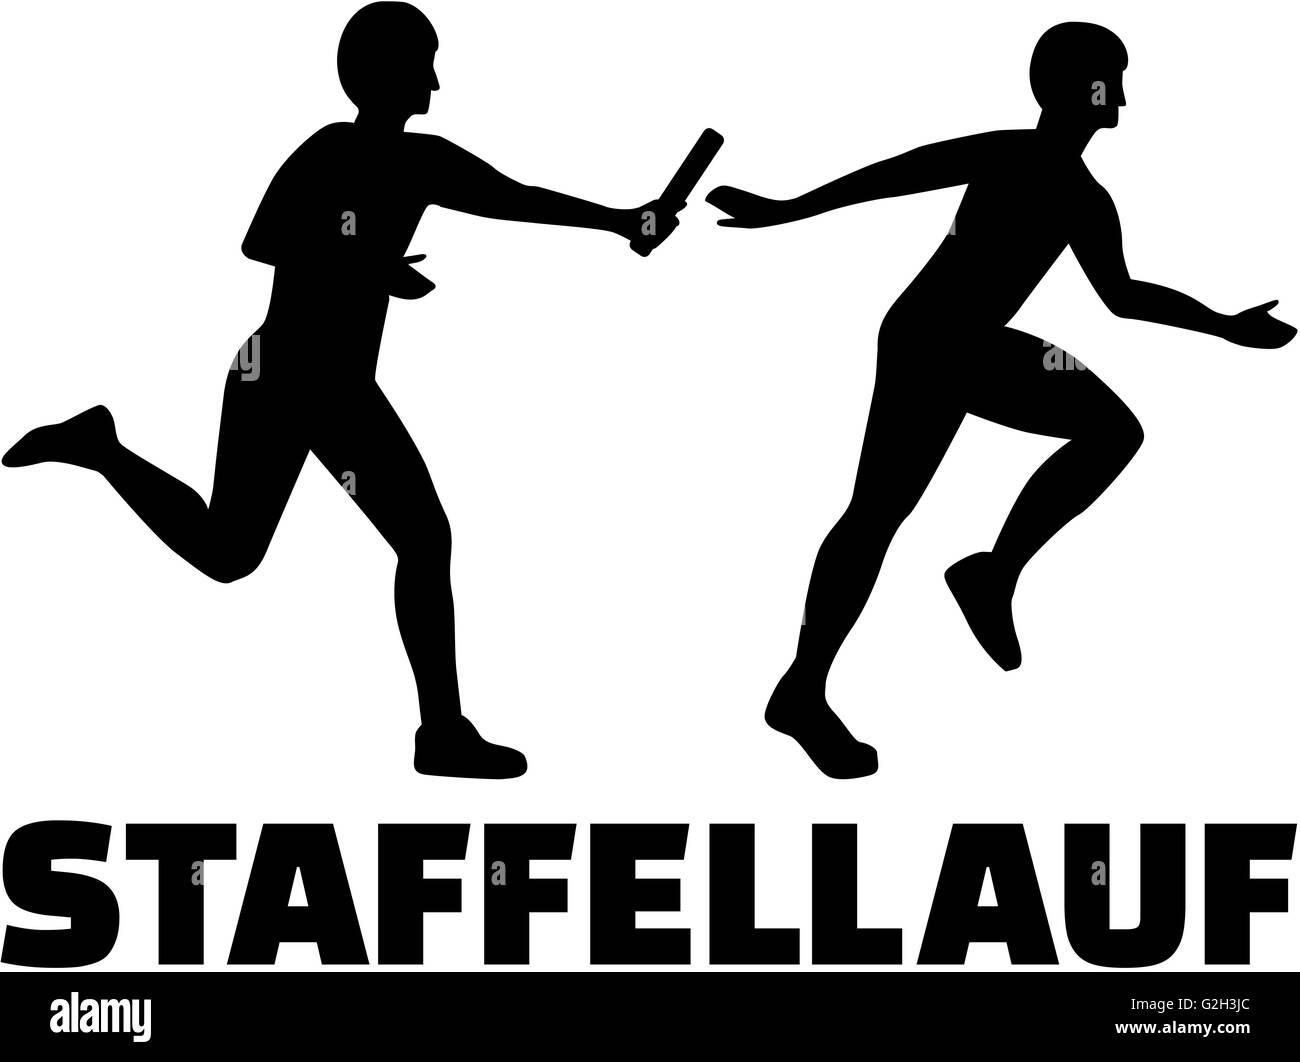 relay german word with silhouette stock photo 104867572 alamy